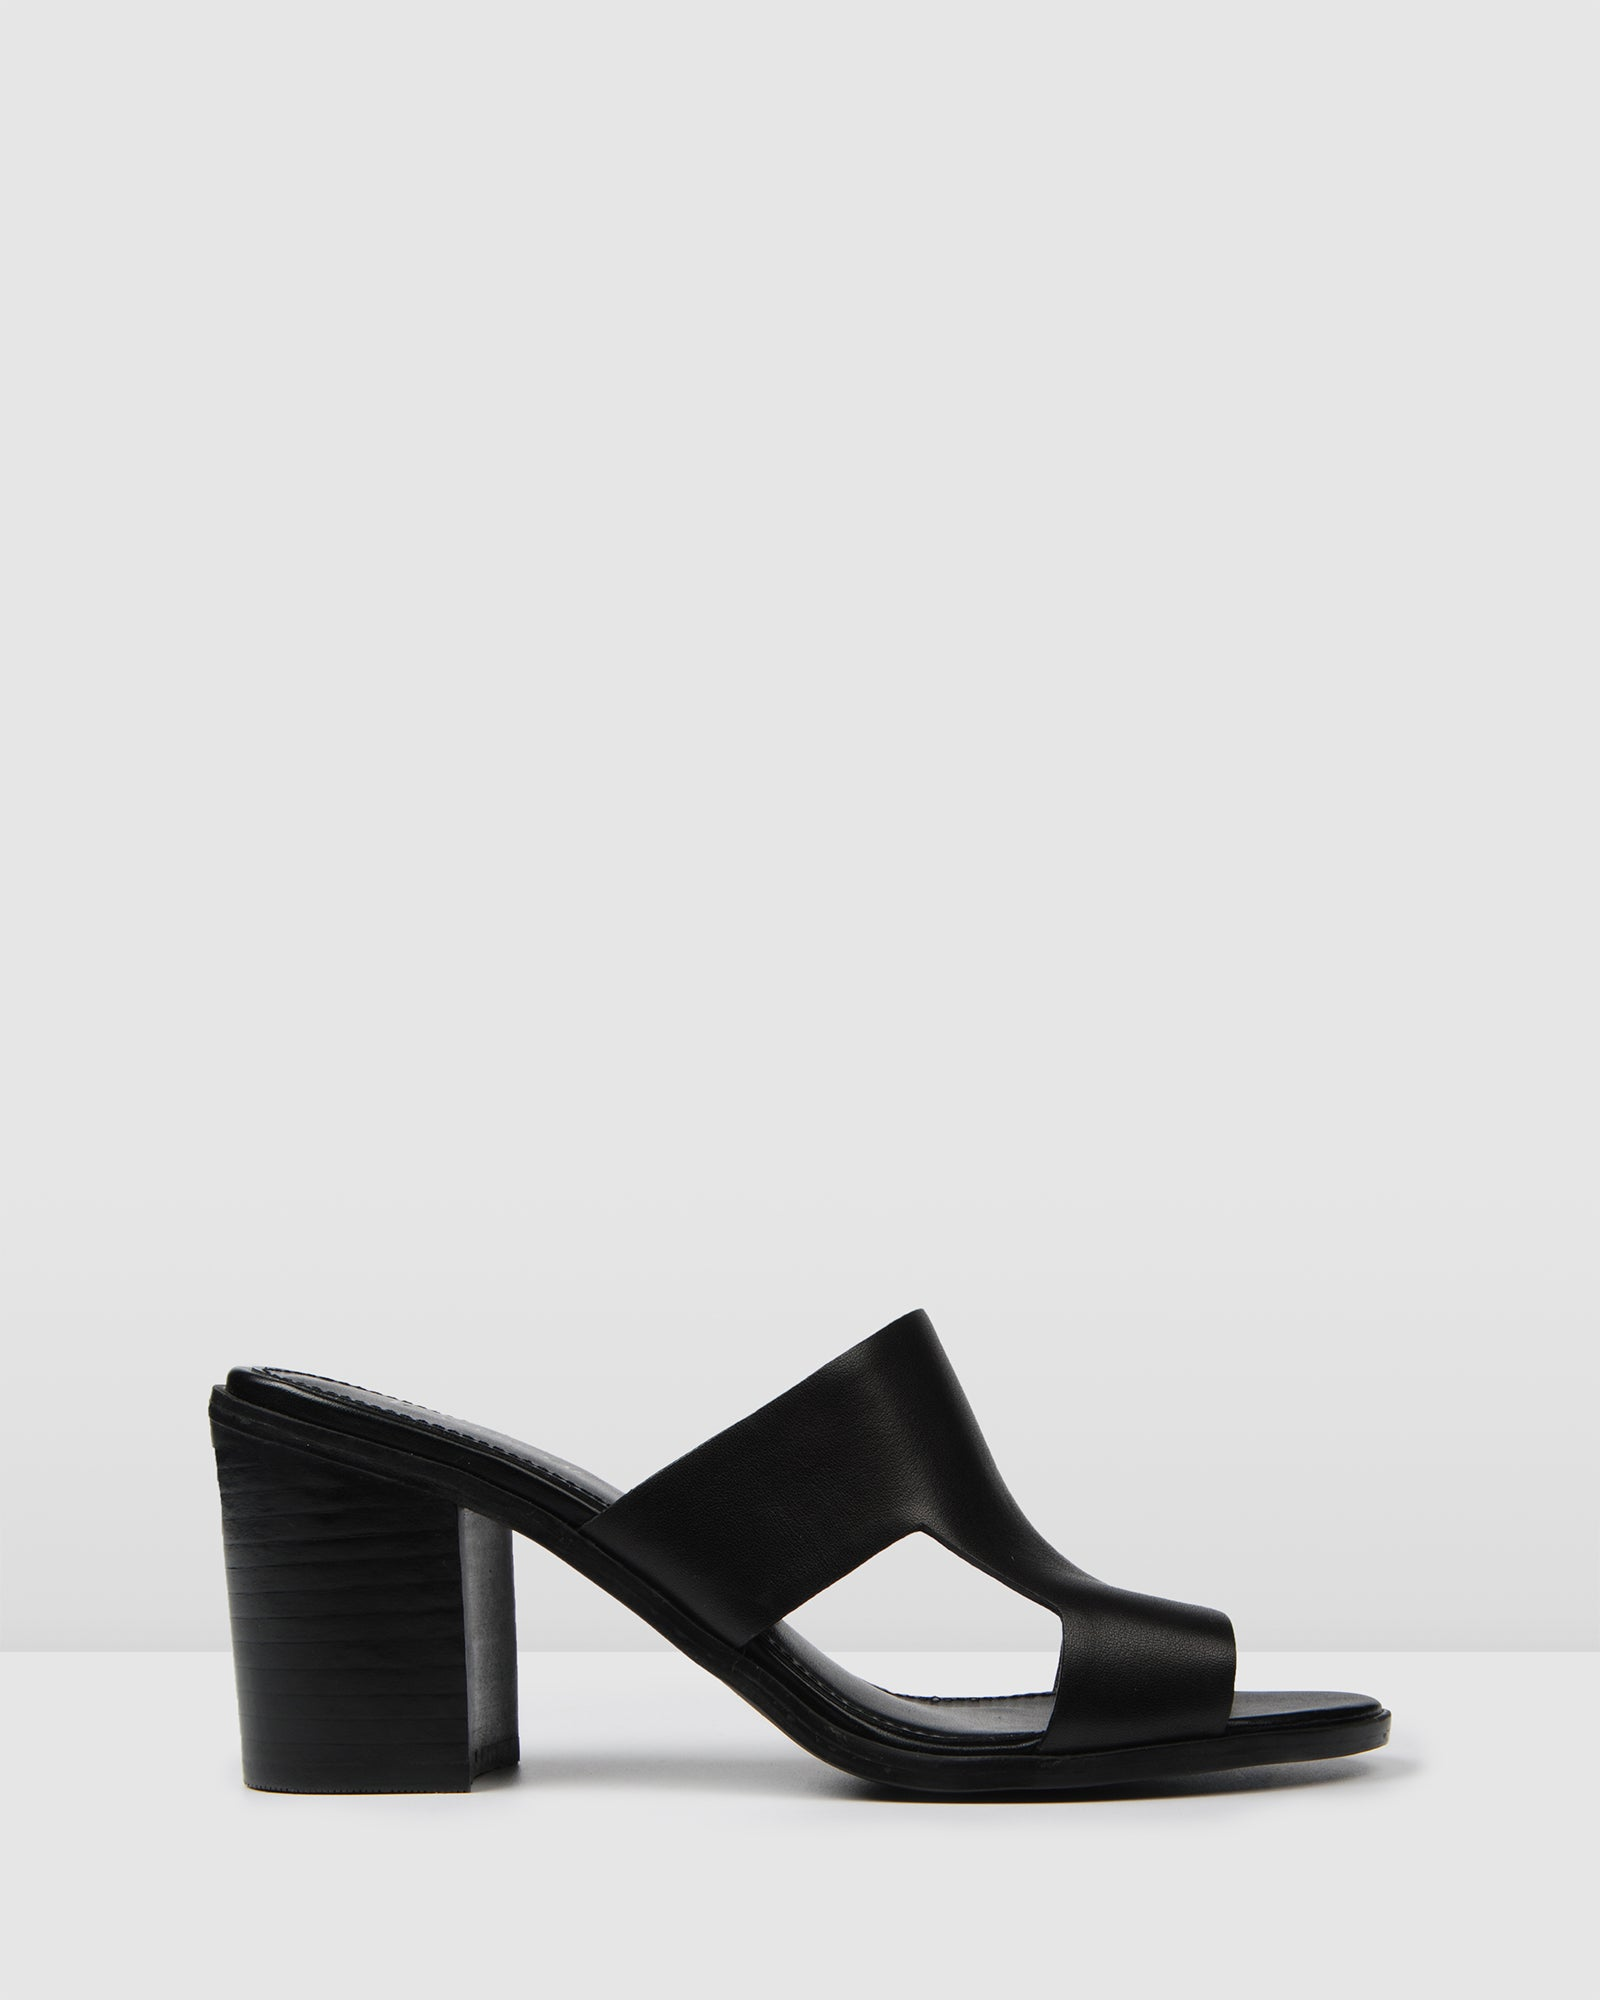 DELILAH MID SANDALS BLACK LEATHER BLACK LEATHER